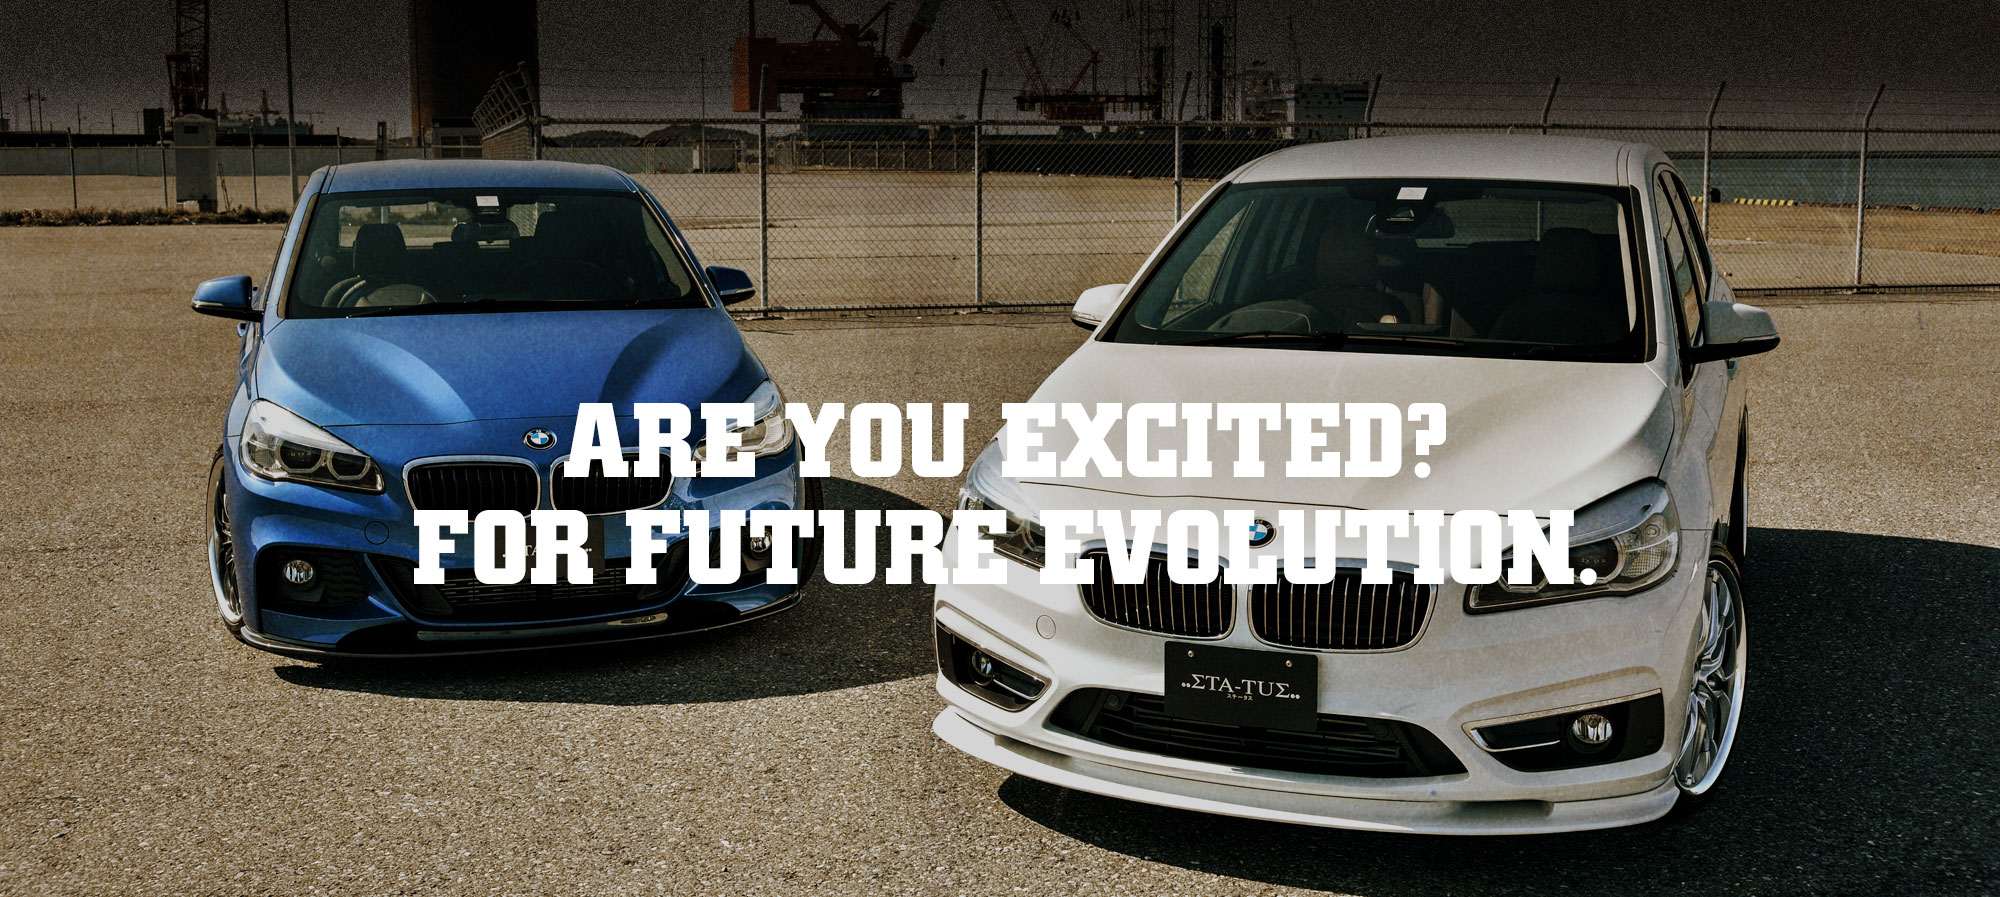 ARE YOU EXCITED? TO FURTHER EVOLVE.